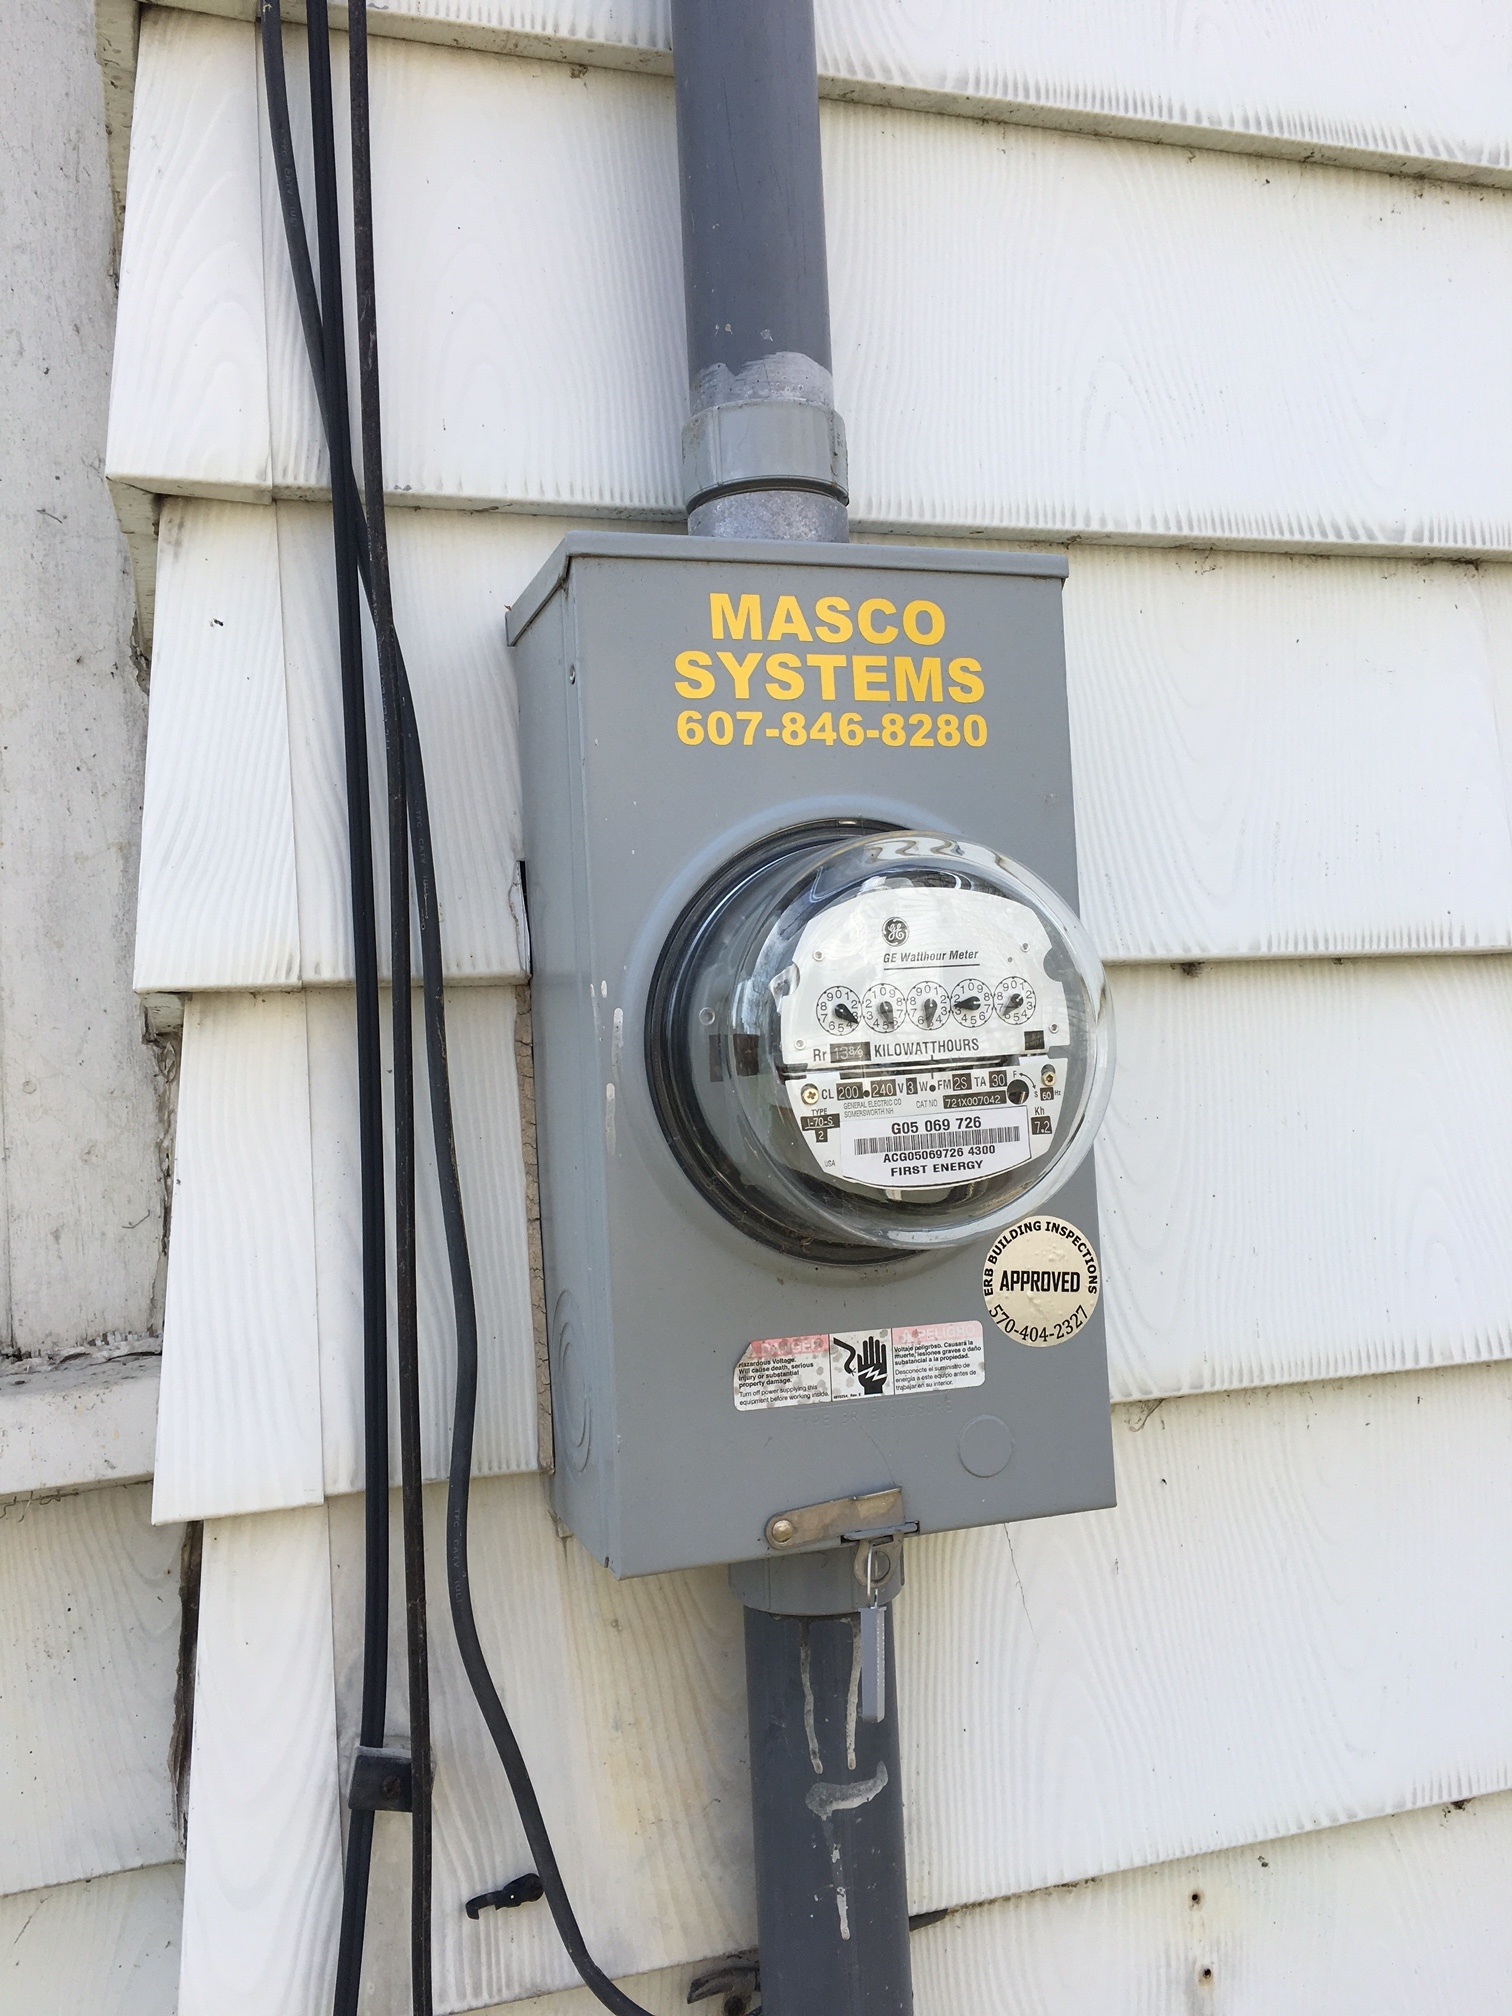 Here's a photo of an analog meter.